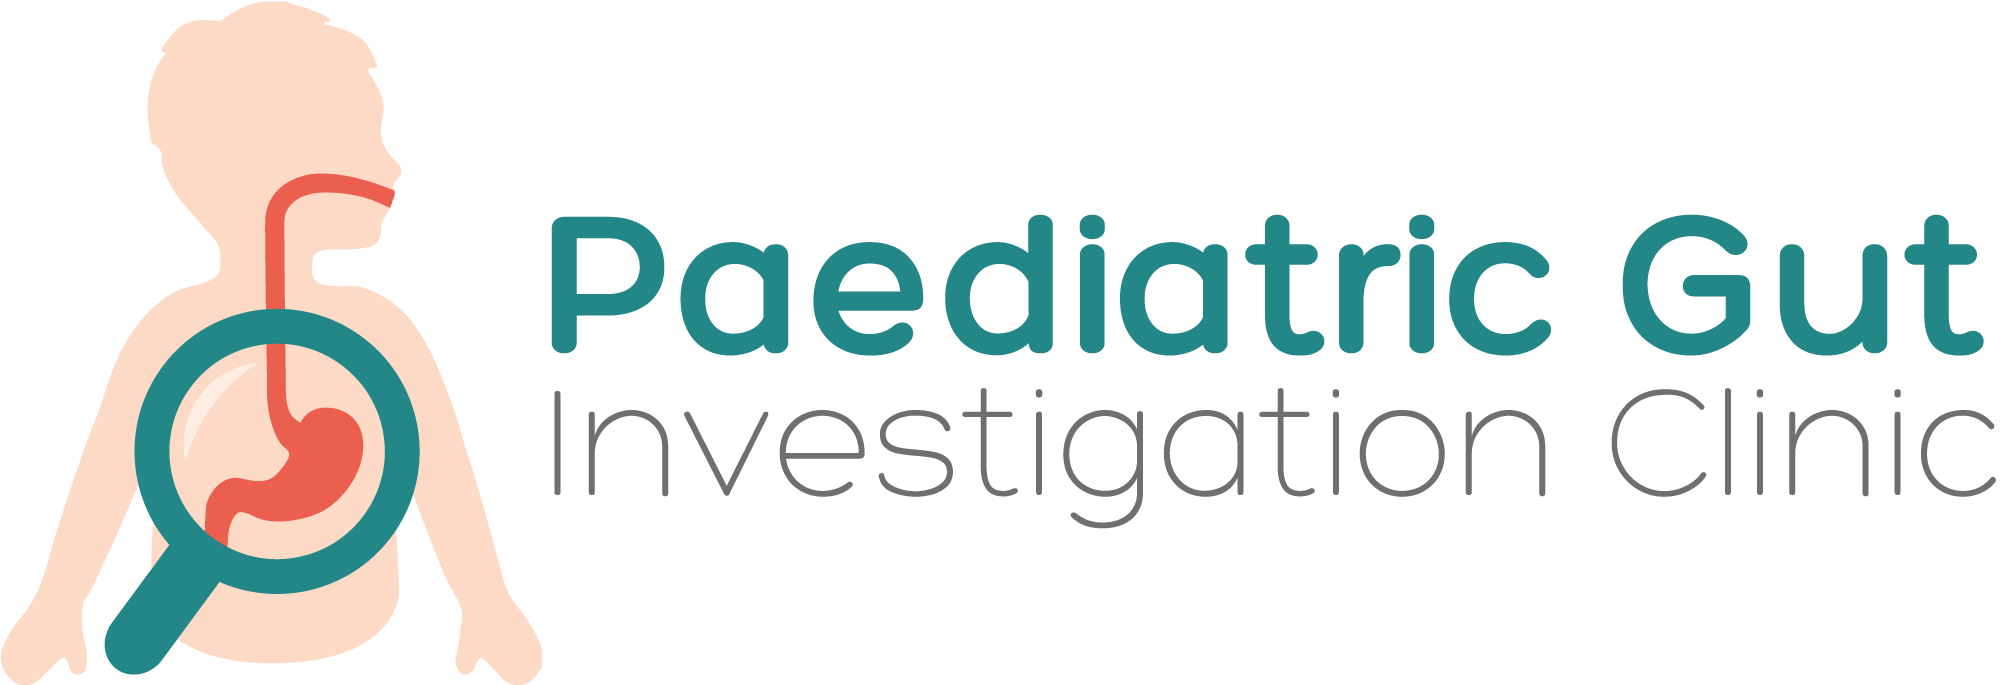 Paediatric Gut Investigation Clinic